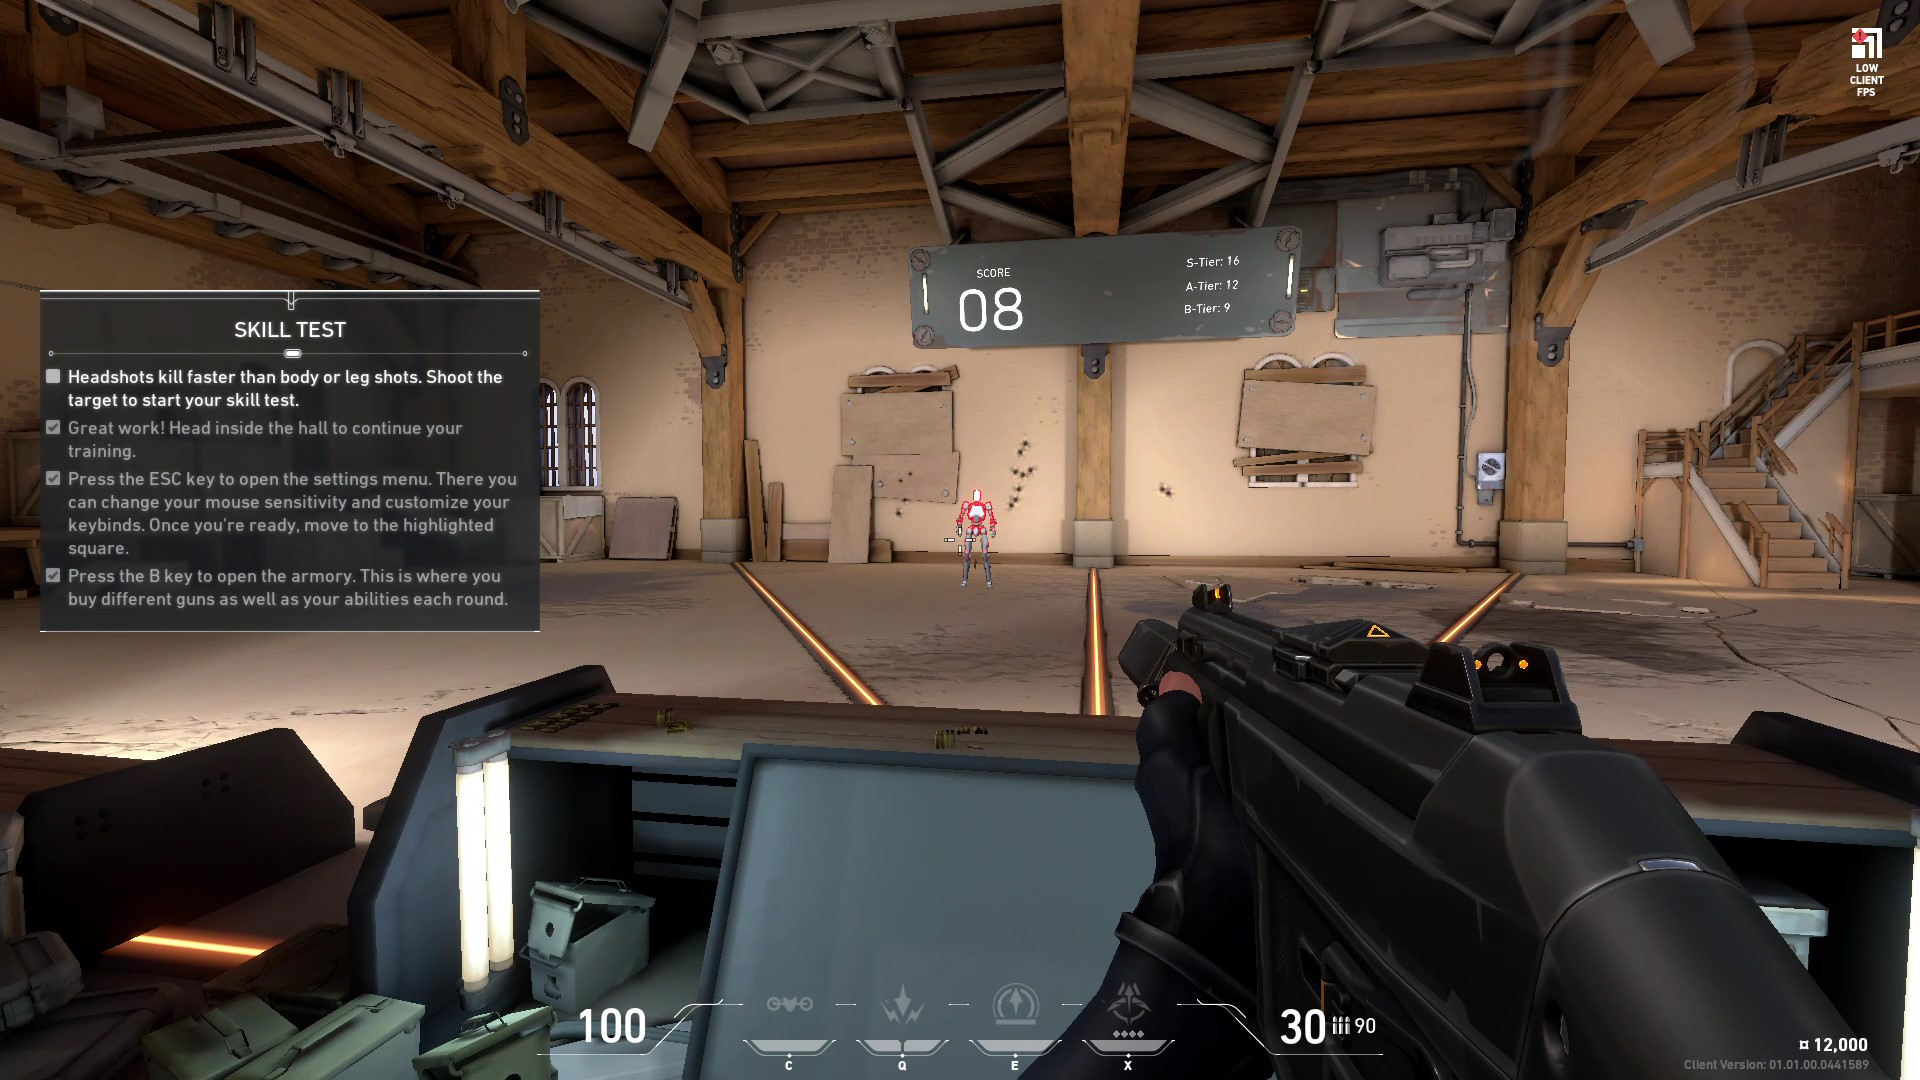 Test your skills at The Range in Valorant when you first jump in.